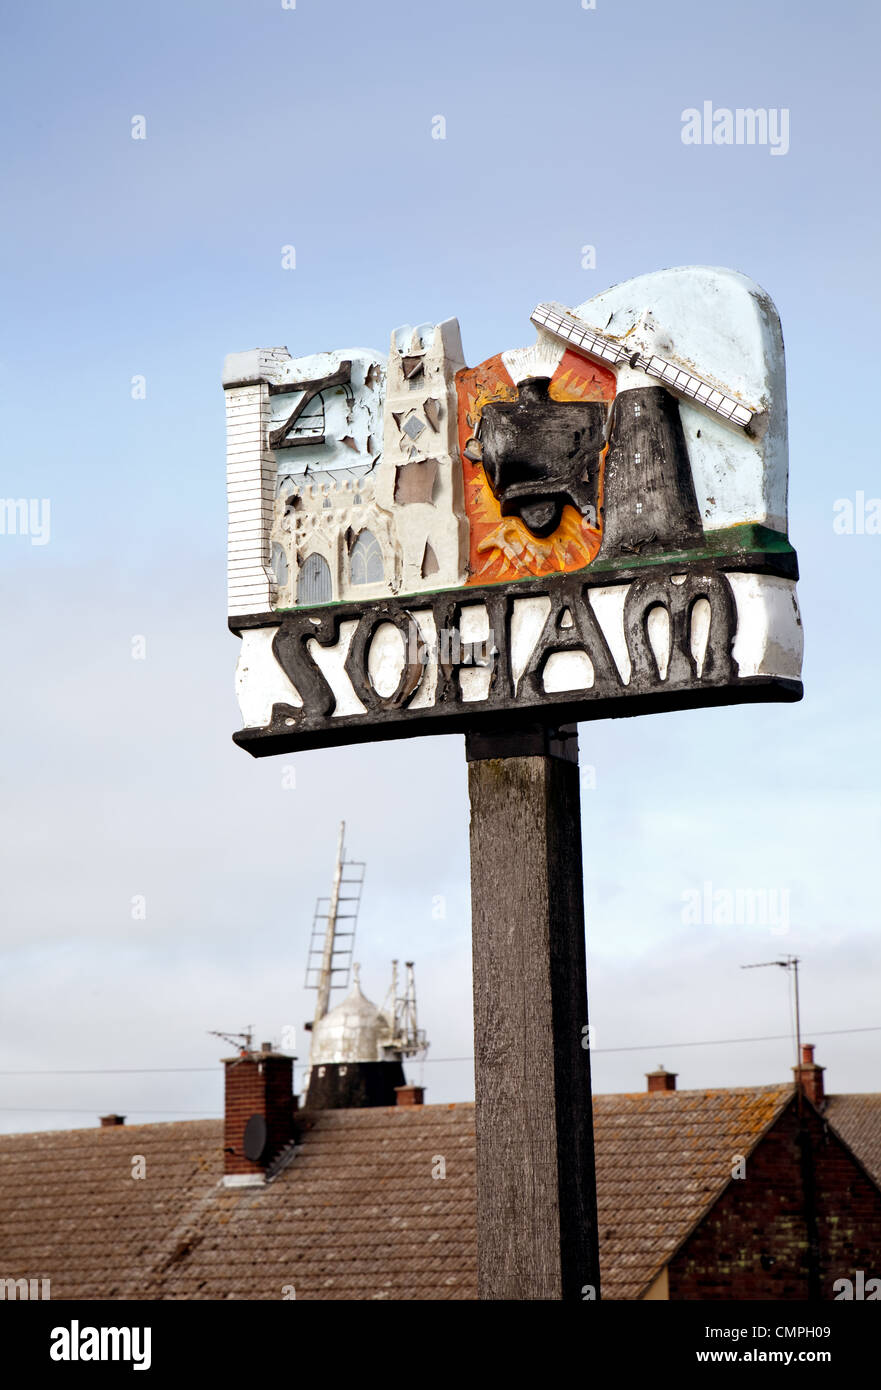 Soham town sign, Soham, Cambridgeshire UK - Stock Image